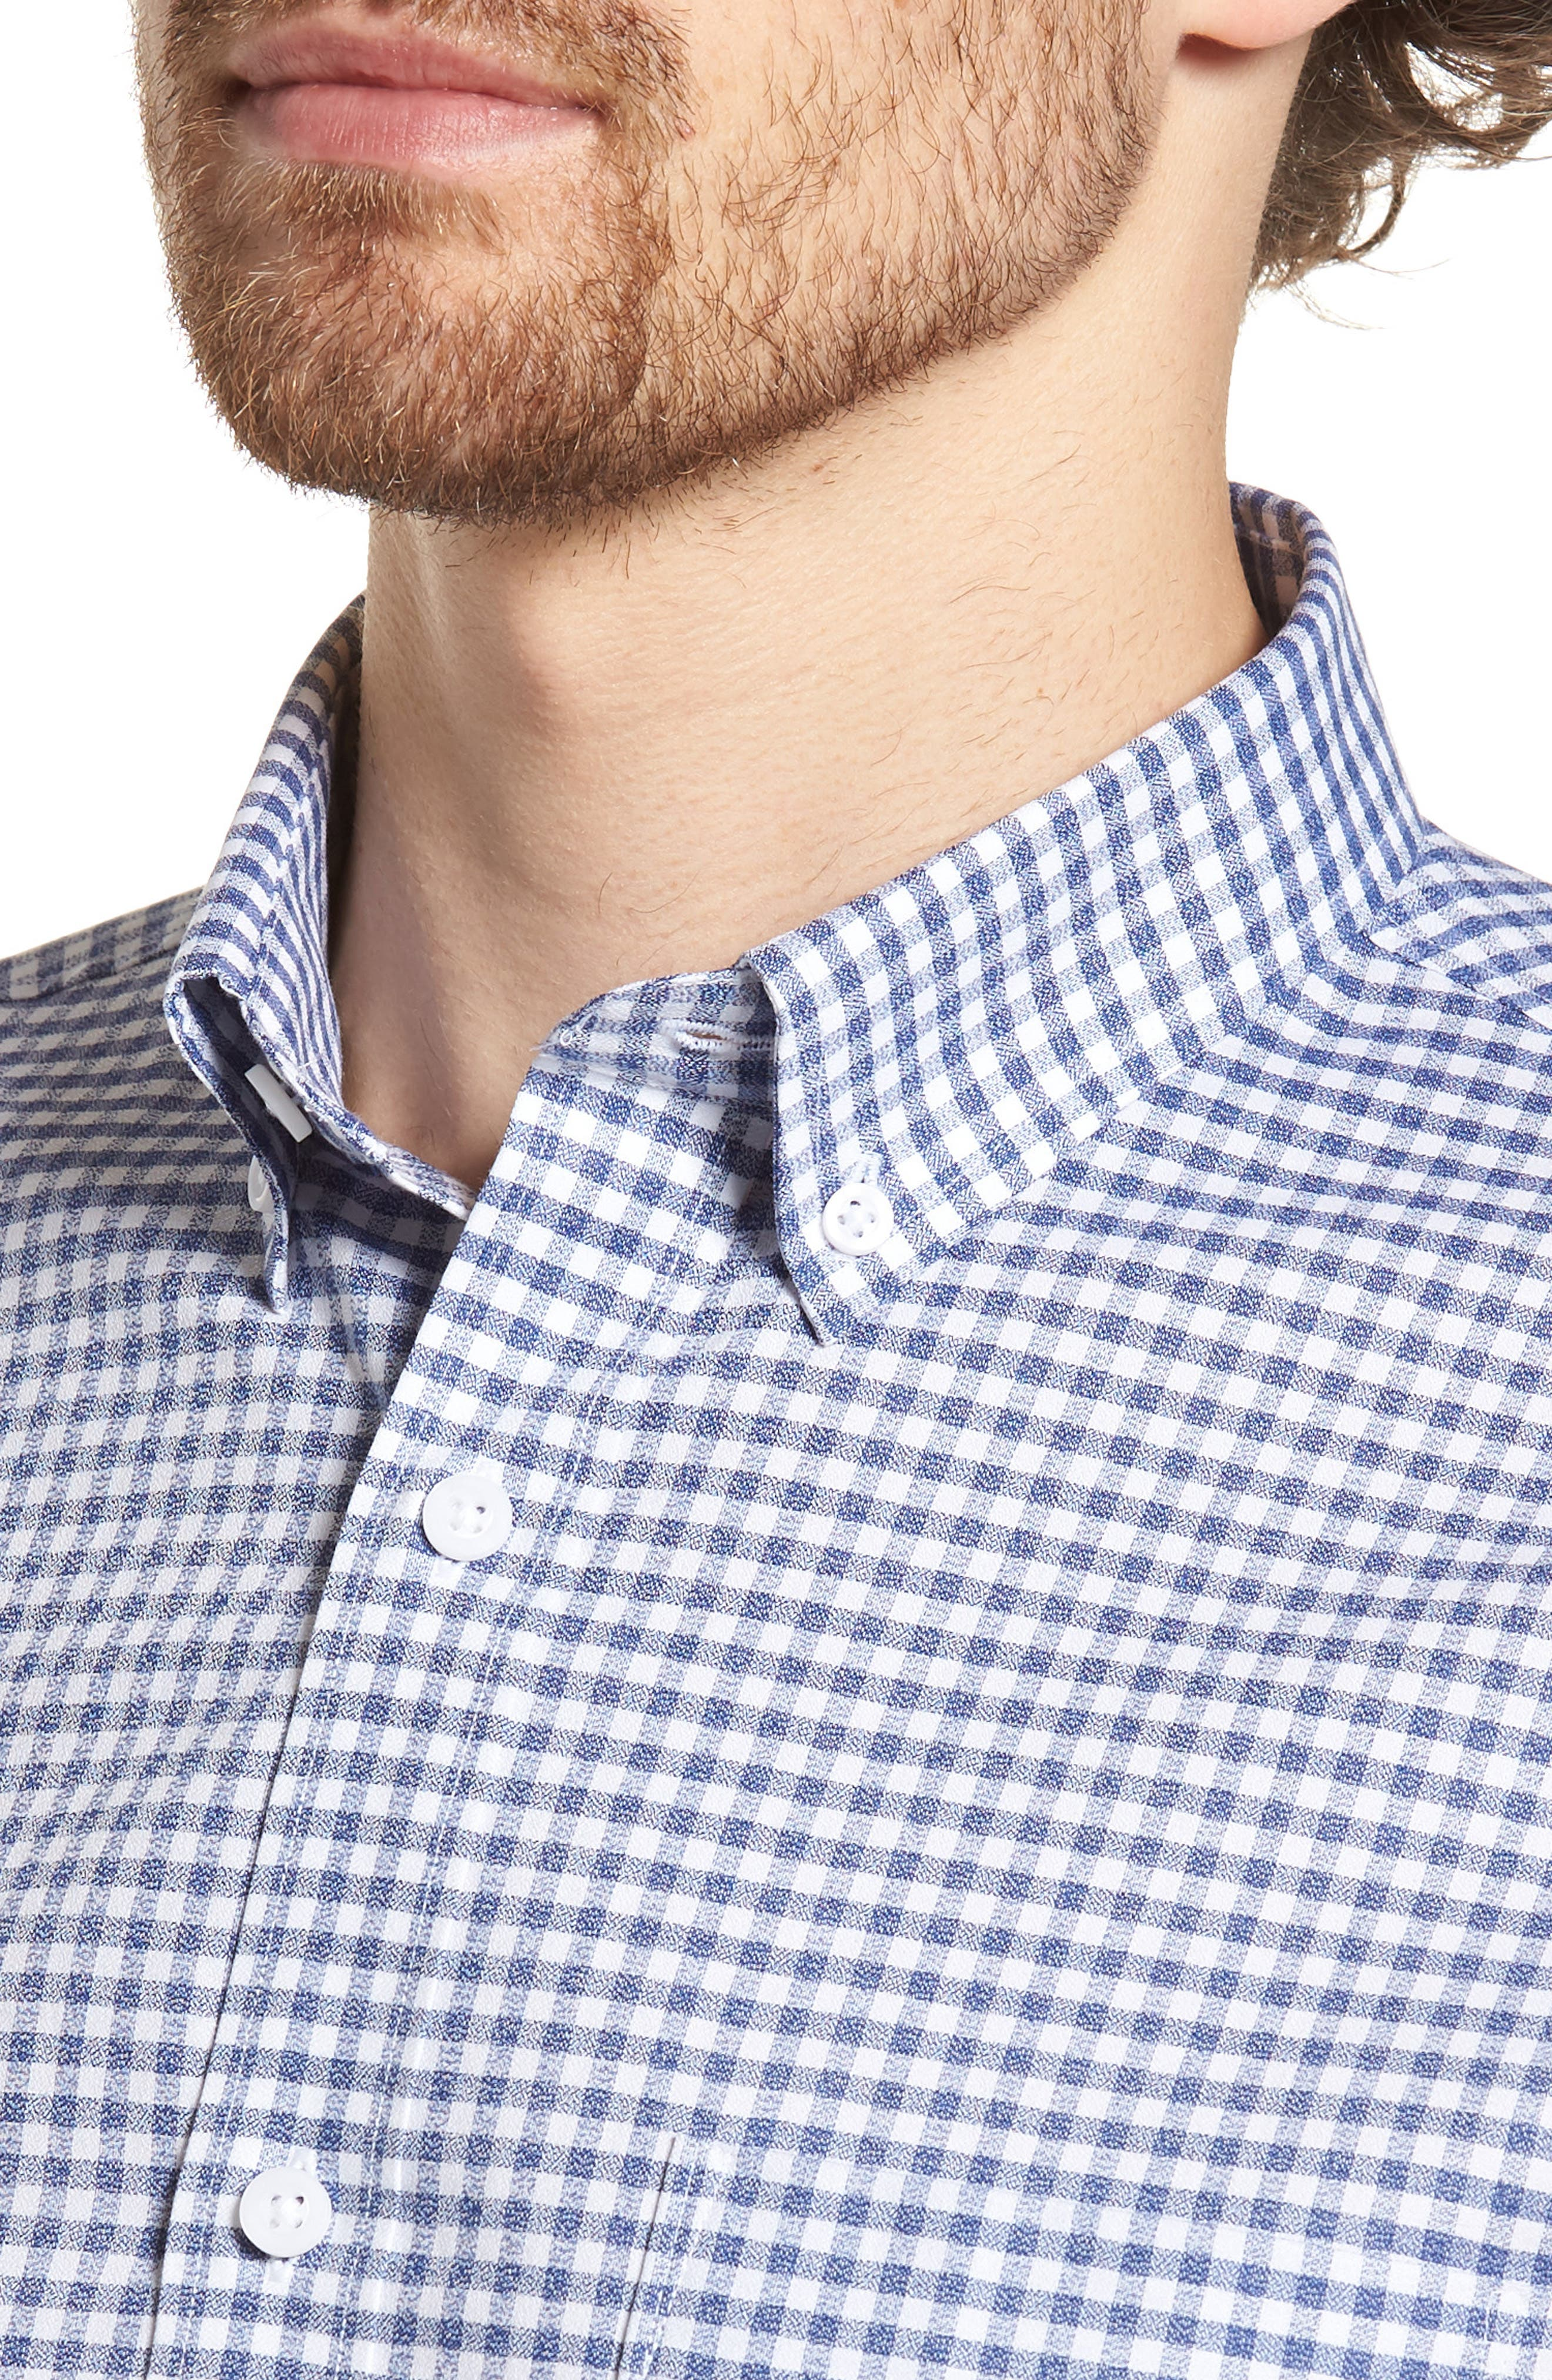 Trim Fit Check Sport Shirt,                             Alternate thumbnail 2, color,                             Navy White Jacquard Gingham